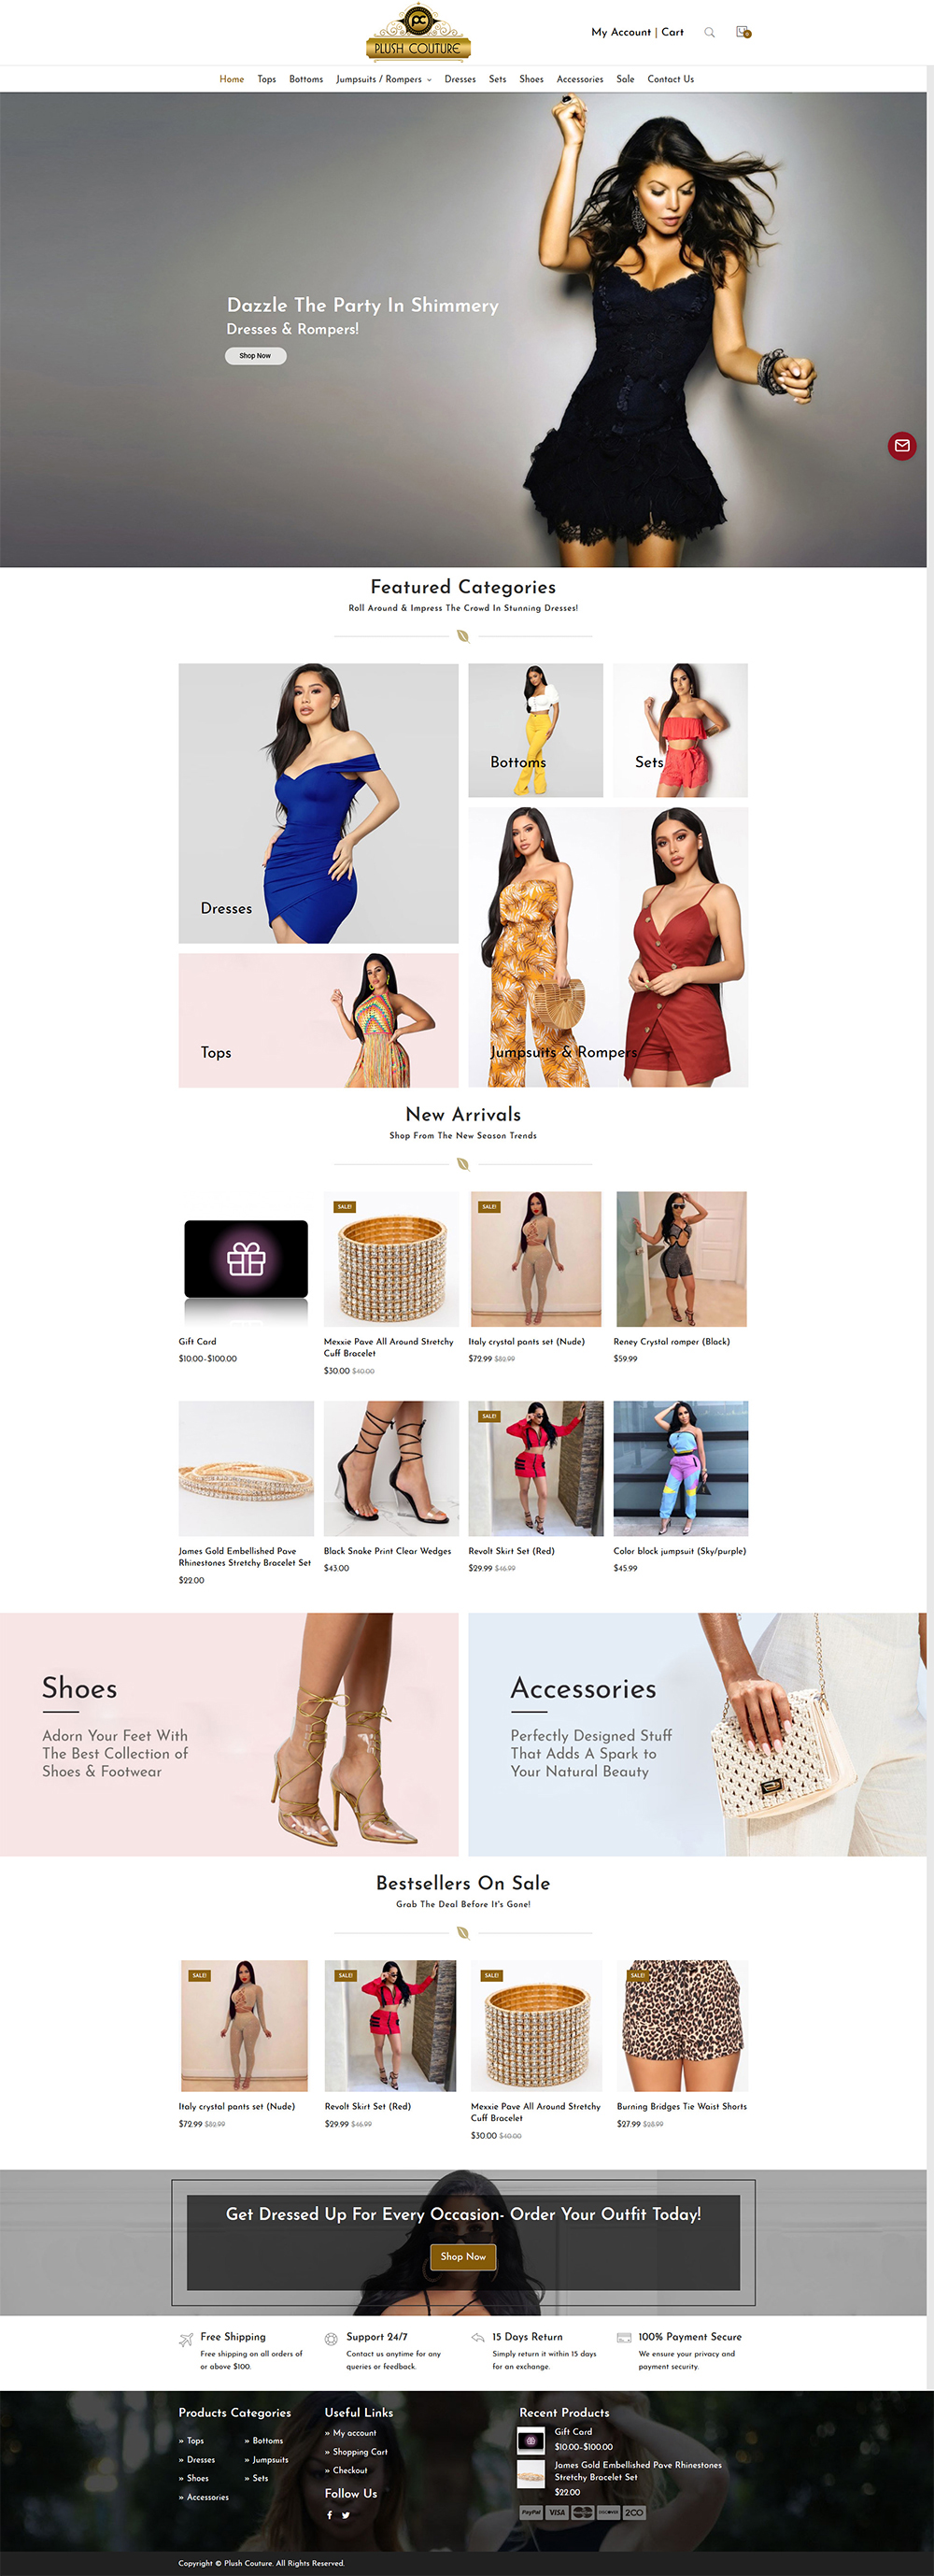 eCommerce Website Development Company Mississauga